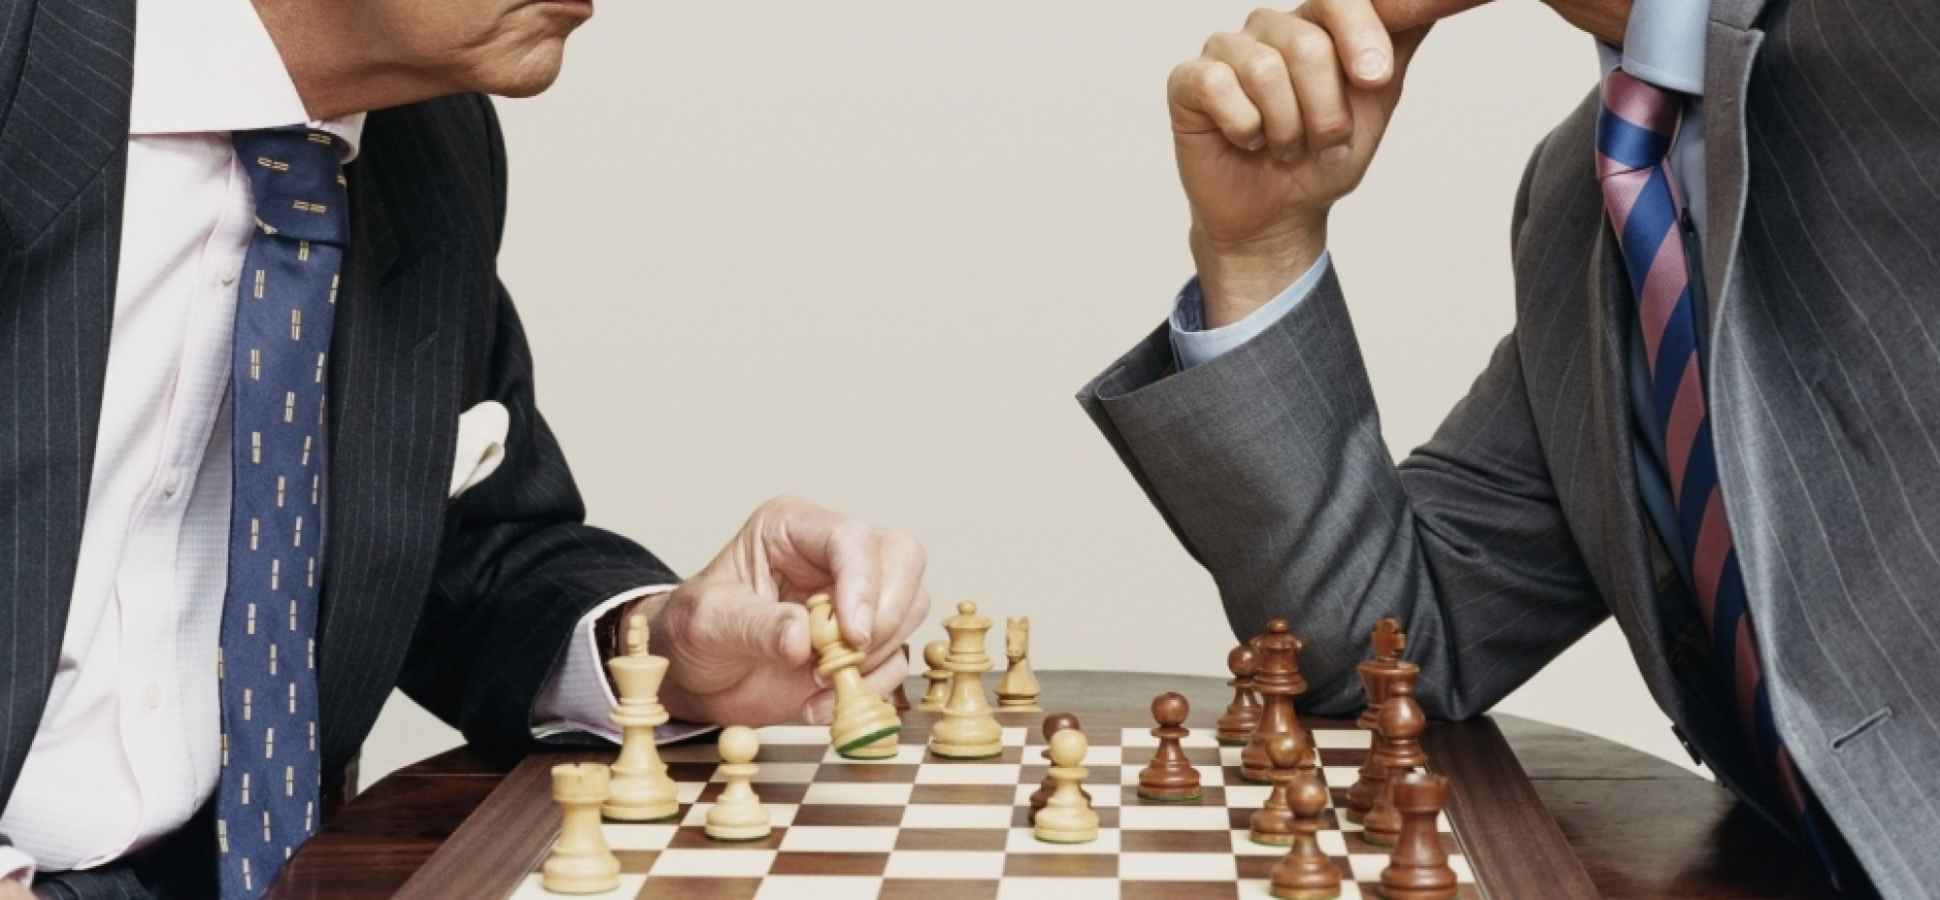 Business Negotiation 101: When to Fight, When to Compromise, and When to Go for Broke